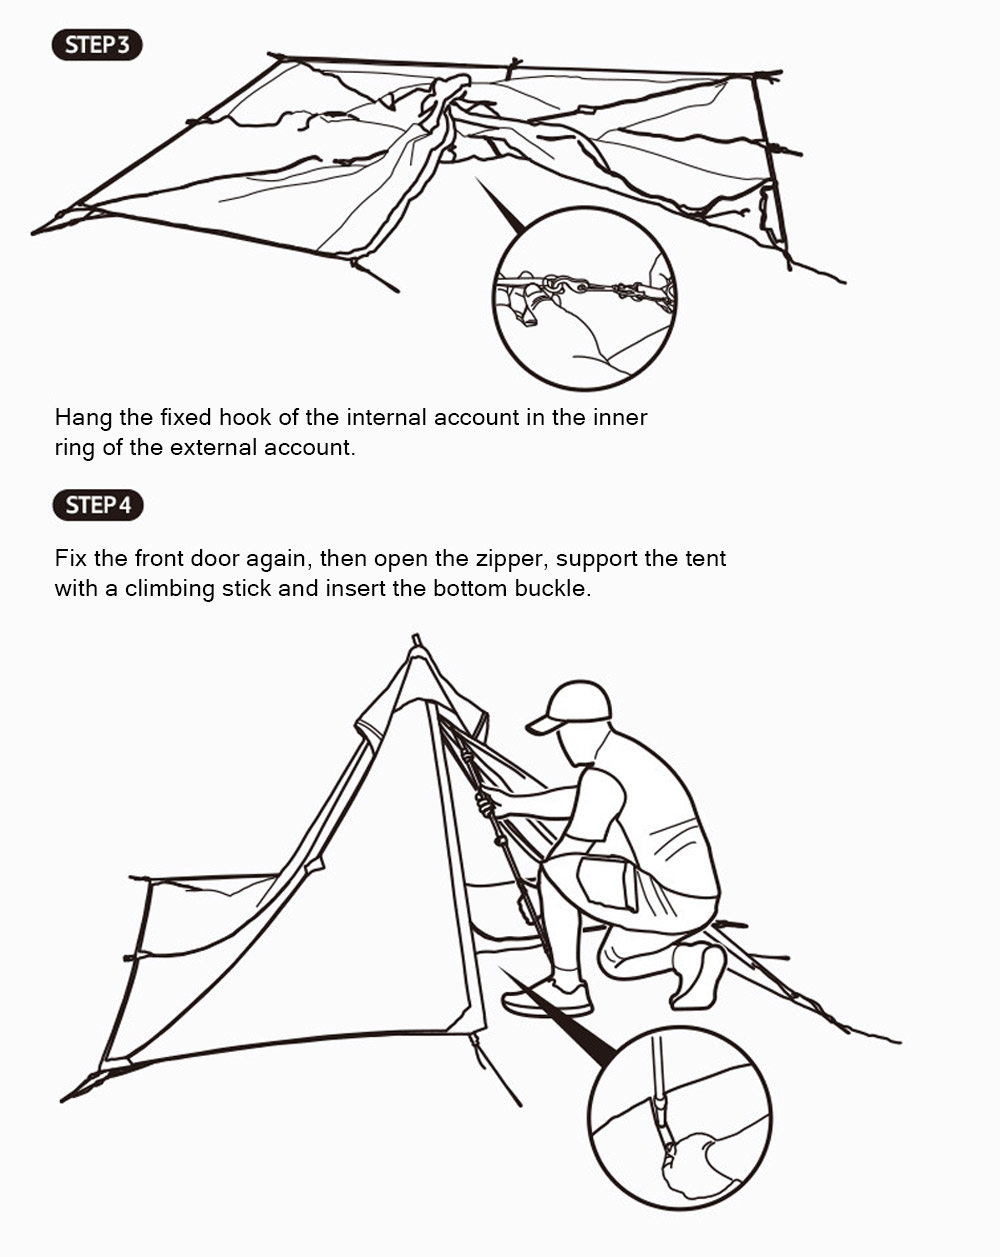 Naturehike Rain-proof Camping Tent Ultra-Light Outdoor Double-Layer Silica Single Tower Sky Tent 13